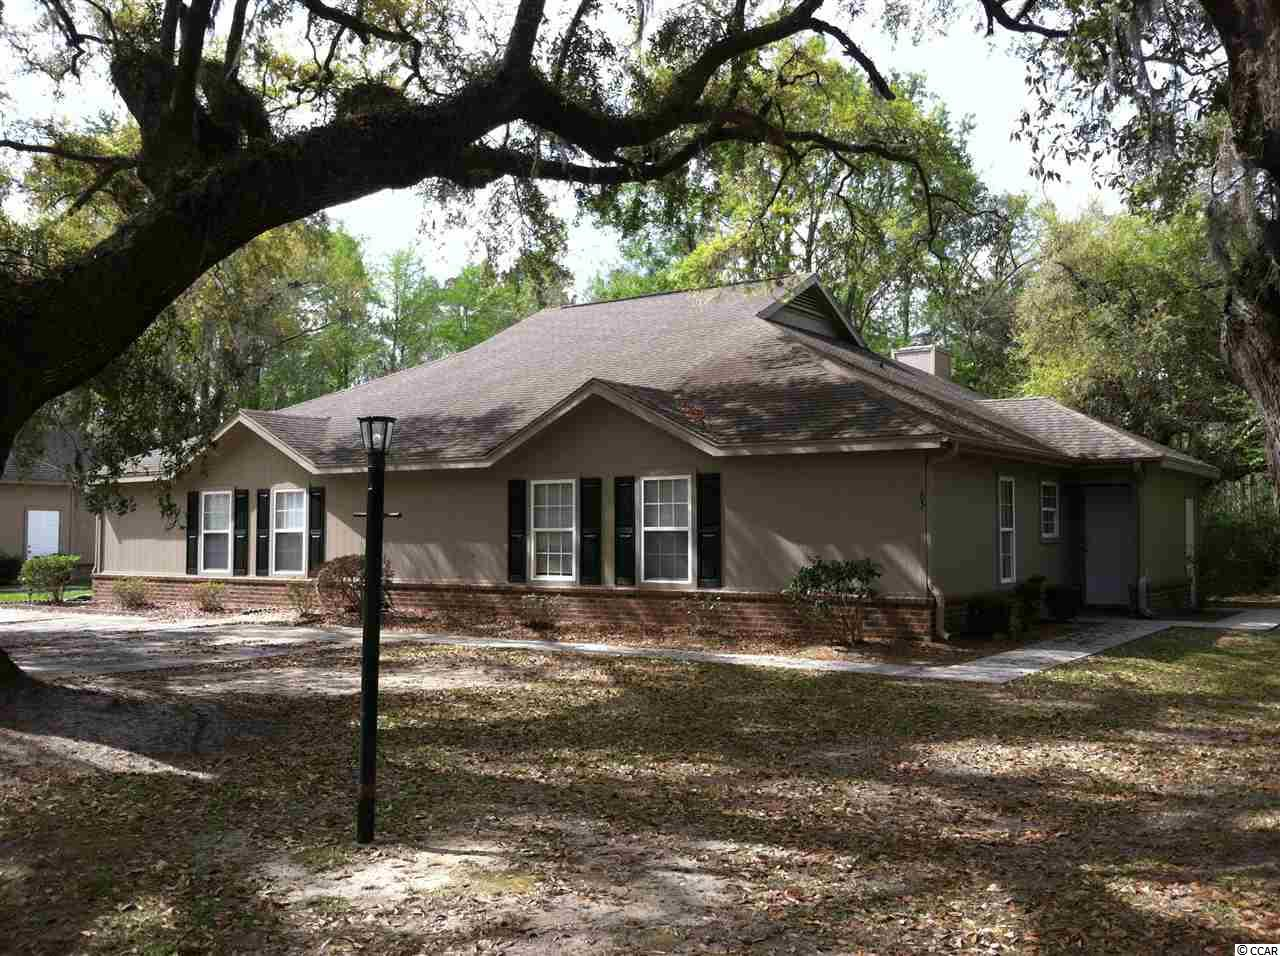 Spacious one level condo with ceramic tile floors and a fireplace.  Set on a beautiful oak lot and has a back screened area.  Square footage is approximate and not guaranteed, buyer is responsible for verification.